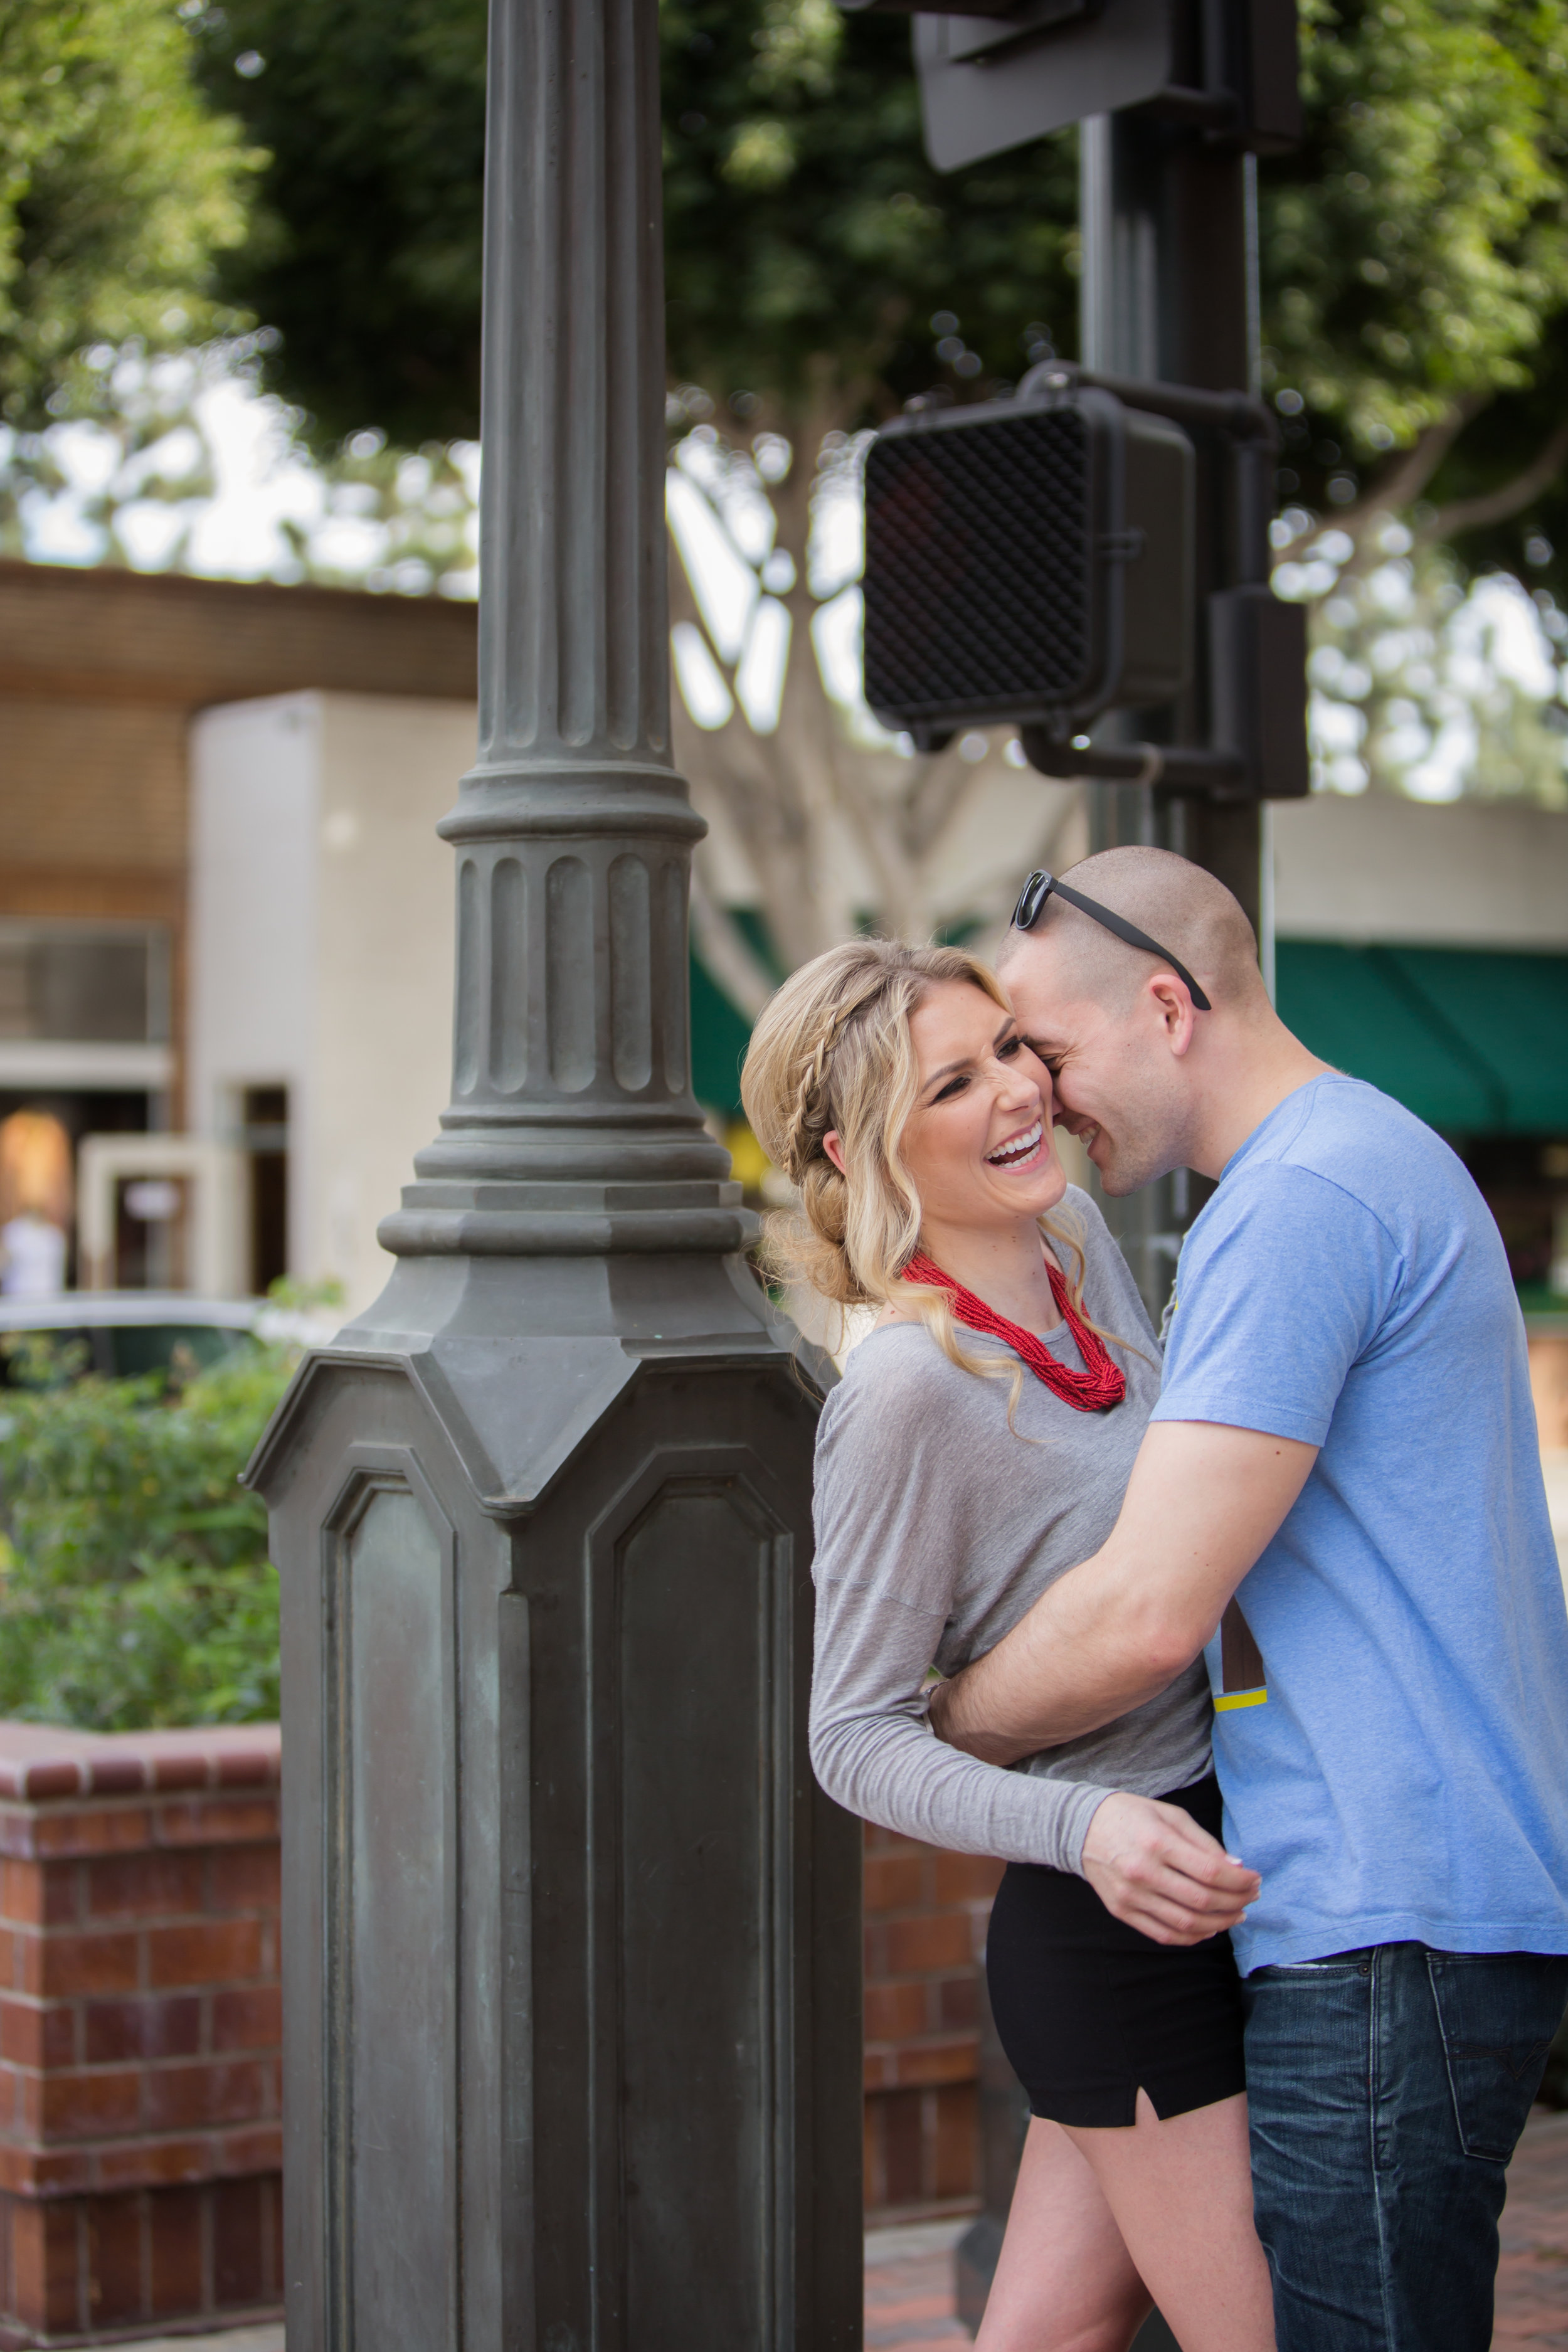 Date Your Spouse | 5 Inexpensive Date Ideas